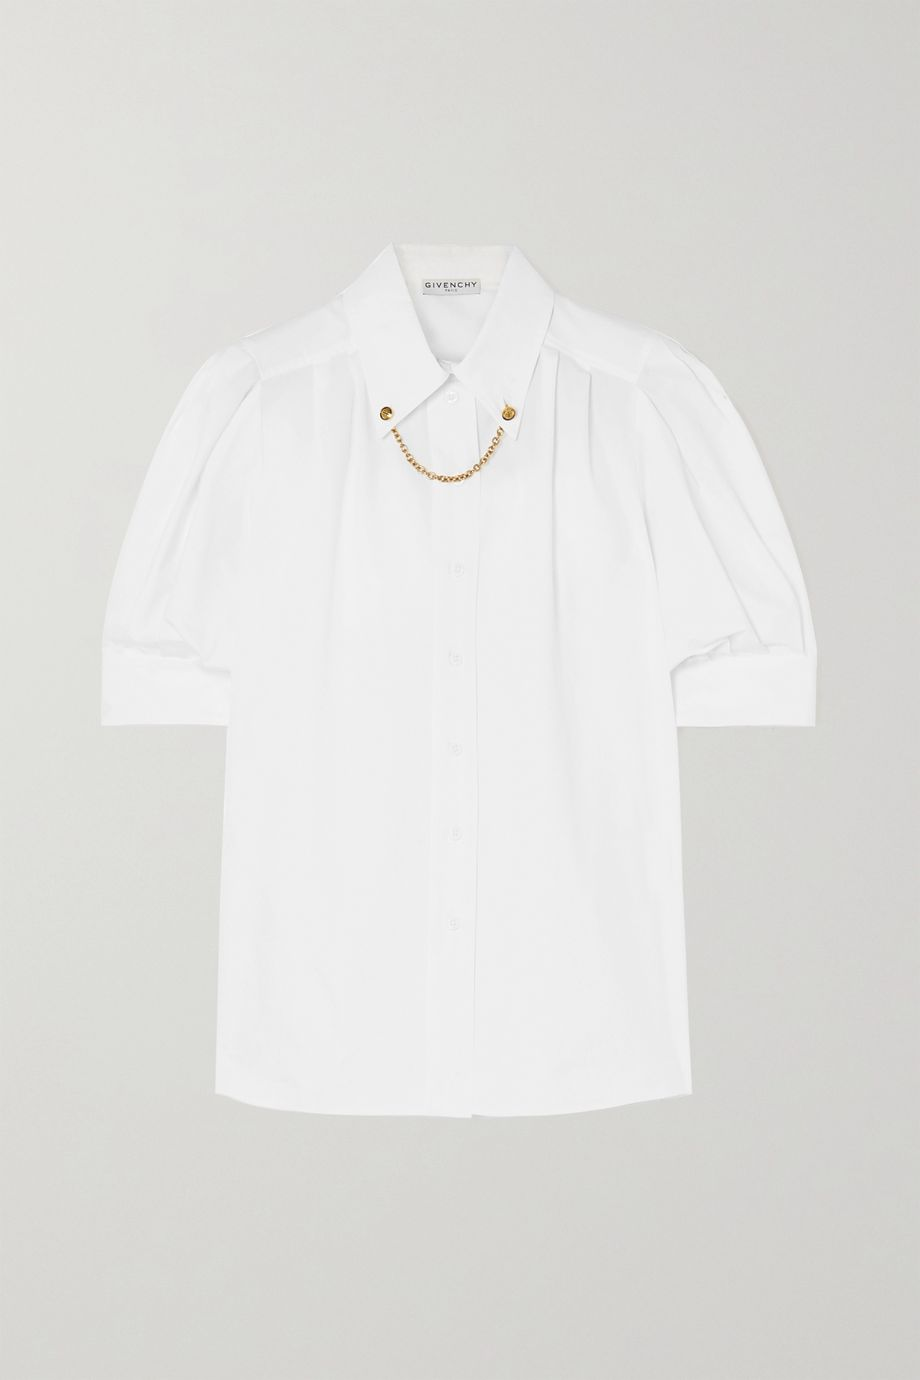 Givenchy Embellished cotton-poplin blouse